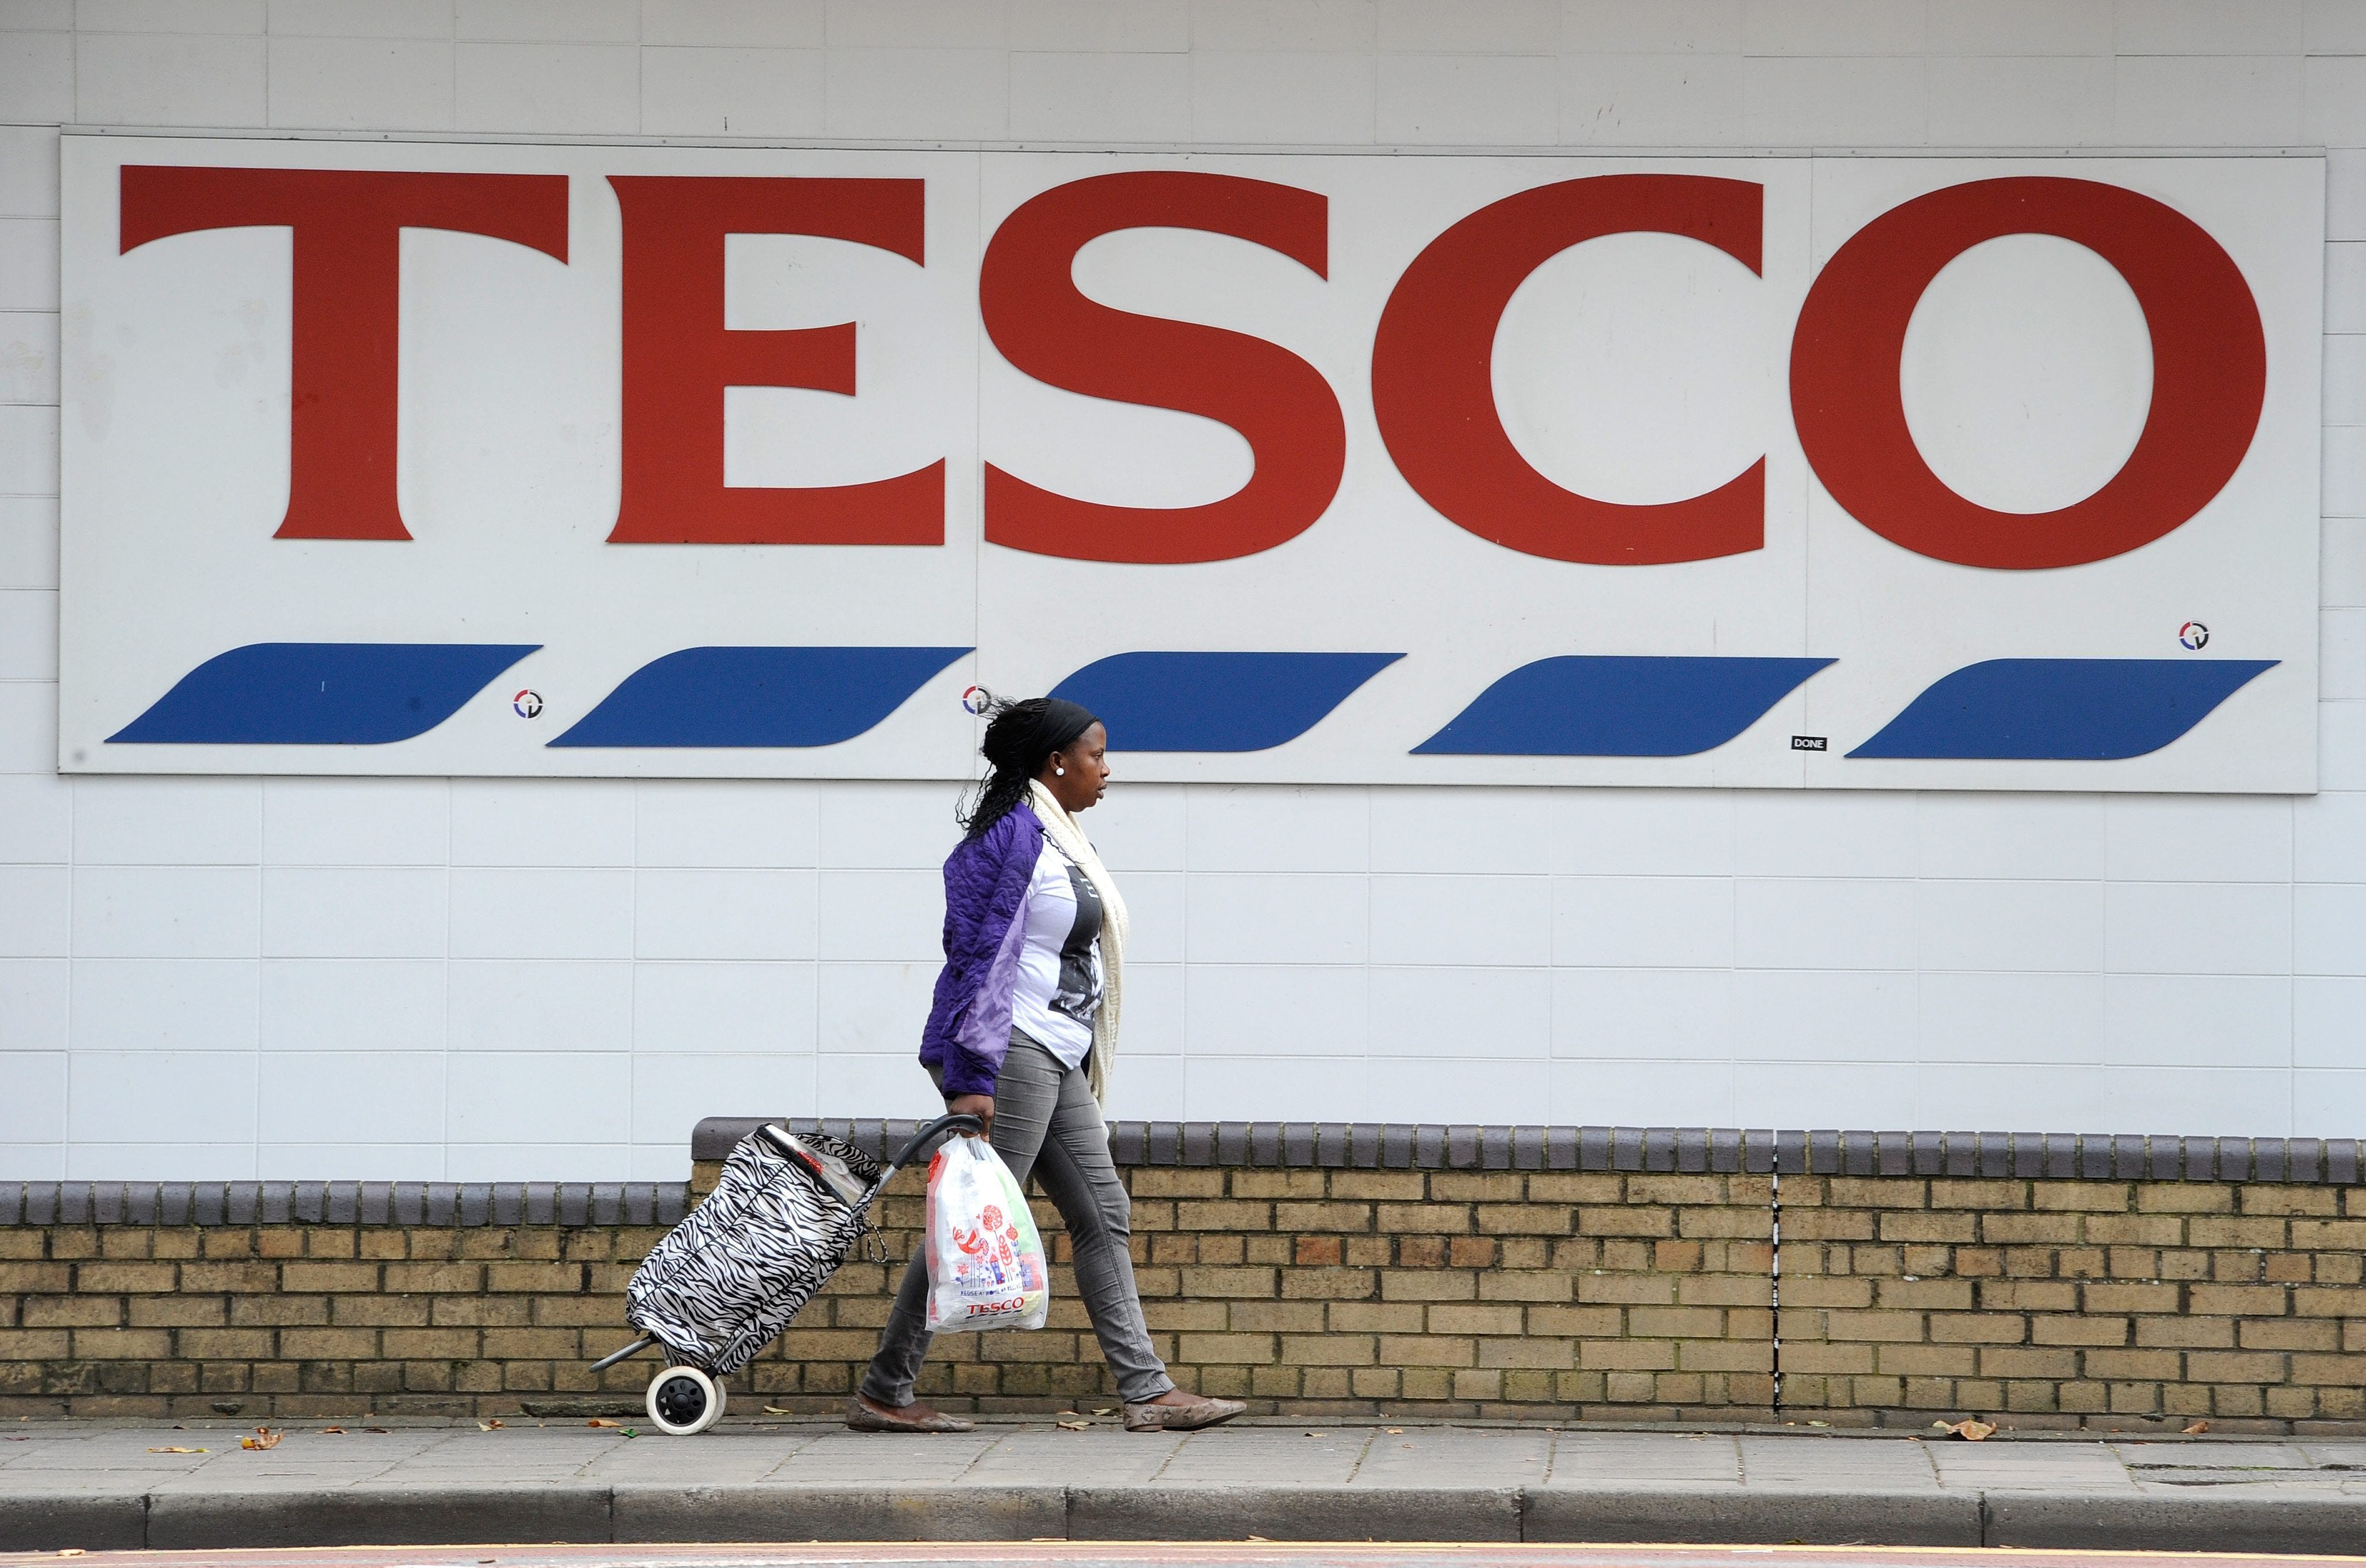 Britain's Tesco issues another profit warning